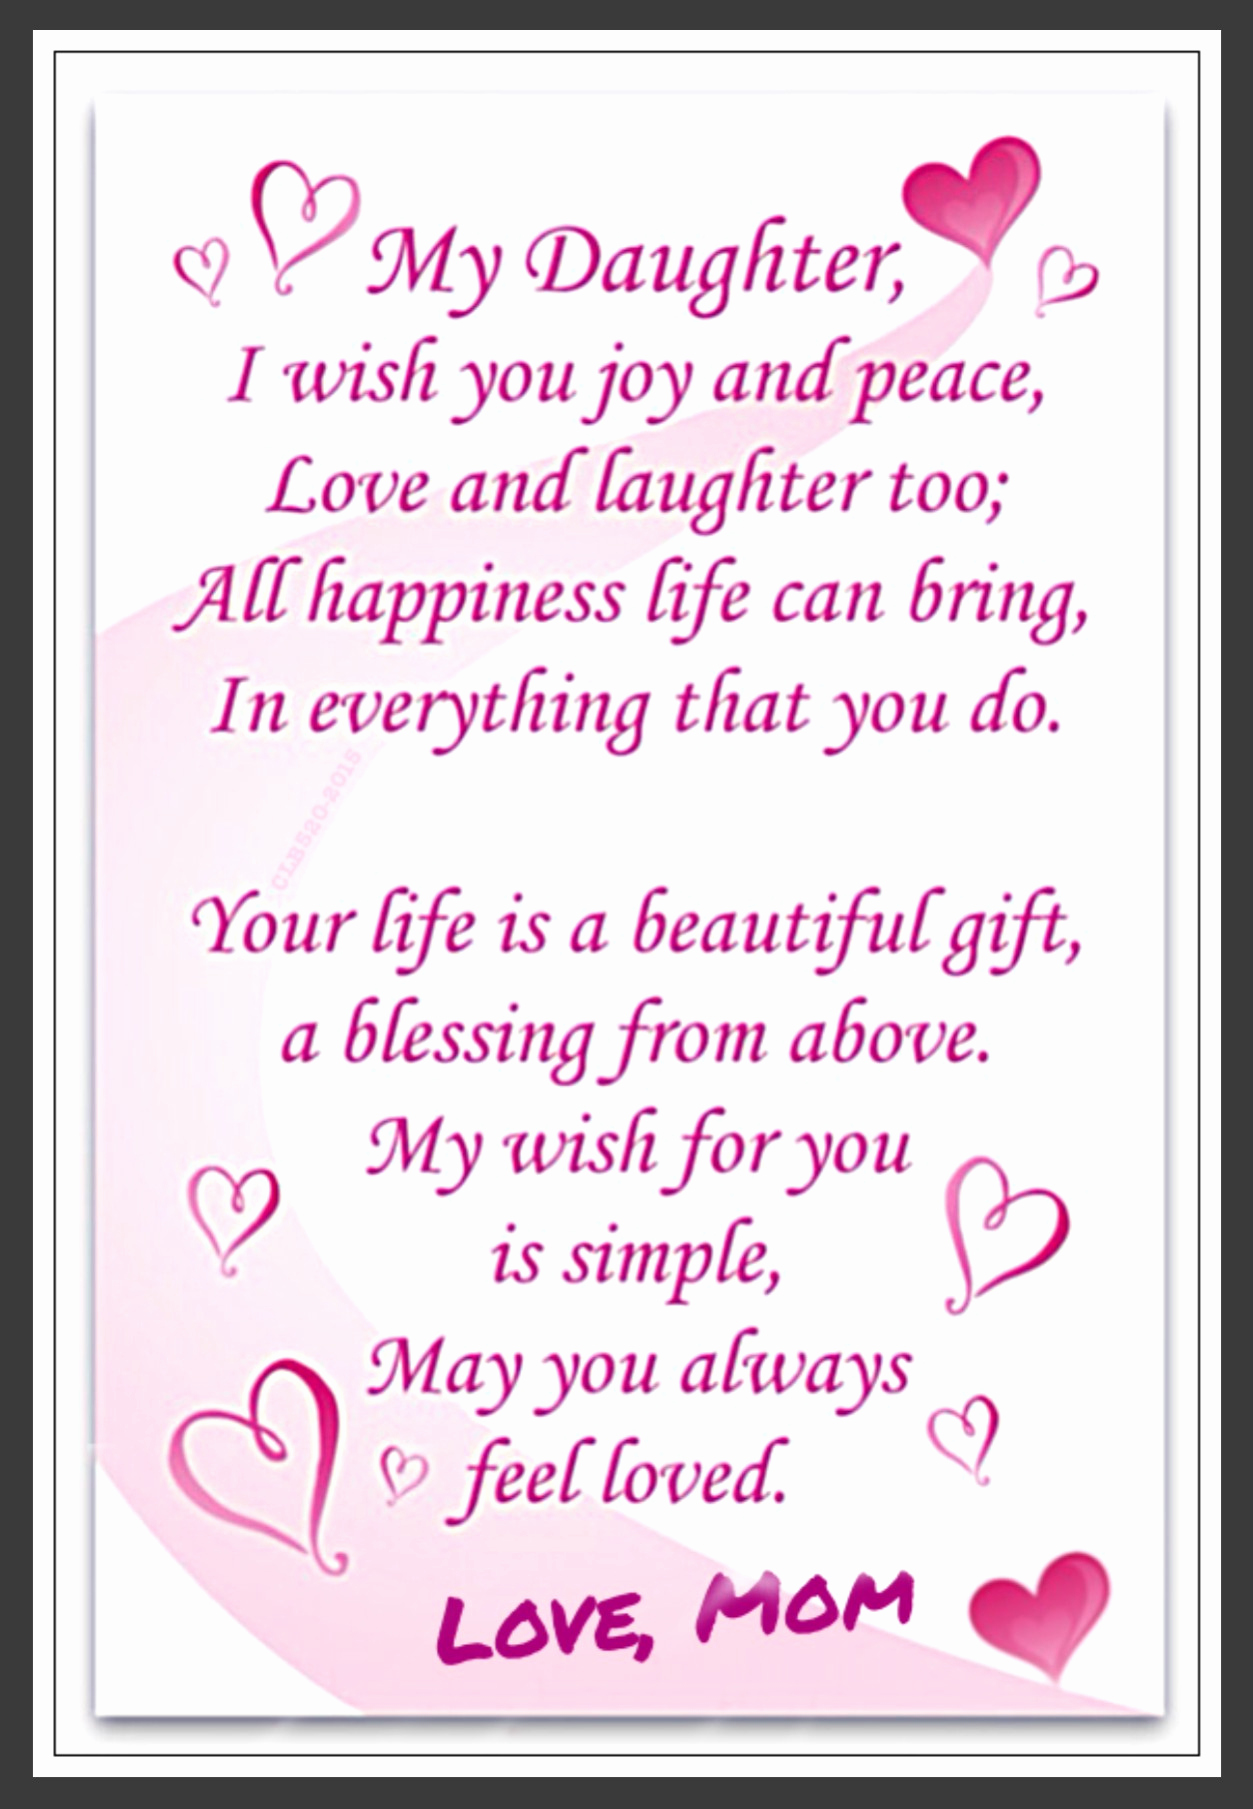 happy 1st birthday message for daughter ; birthday-wishes-for-daughter-turning-3-best-of-happy-3rd-birthday-quotes-luxury-62-13th-happy-birthday-wishes-domoom-of-birthday-wishes-for-daughter-turning-3